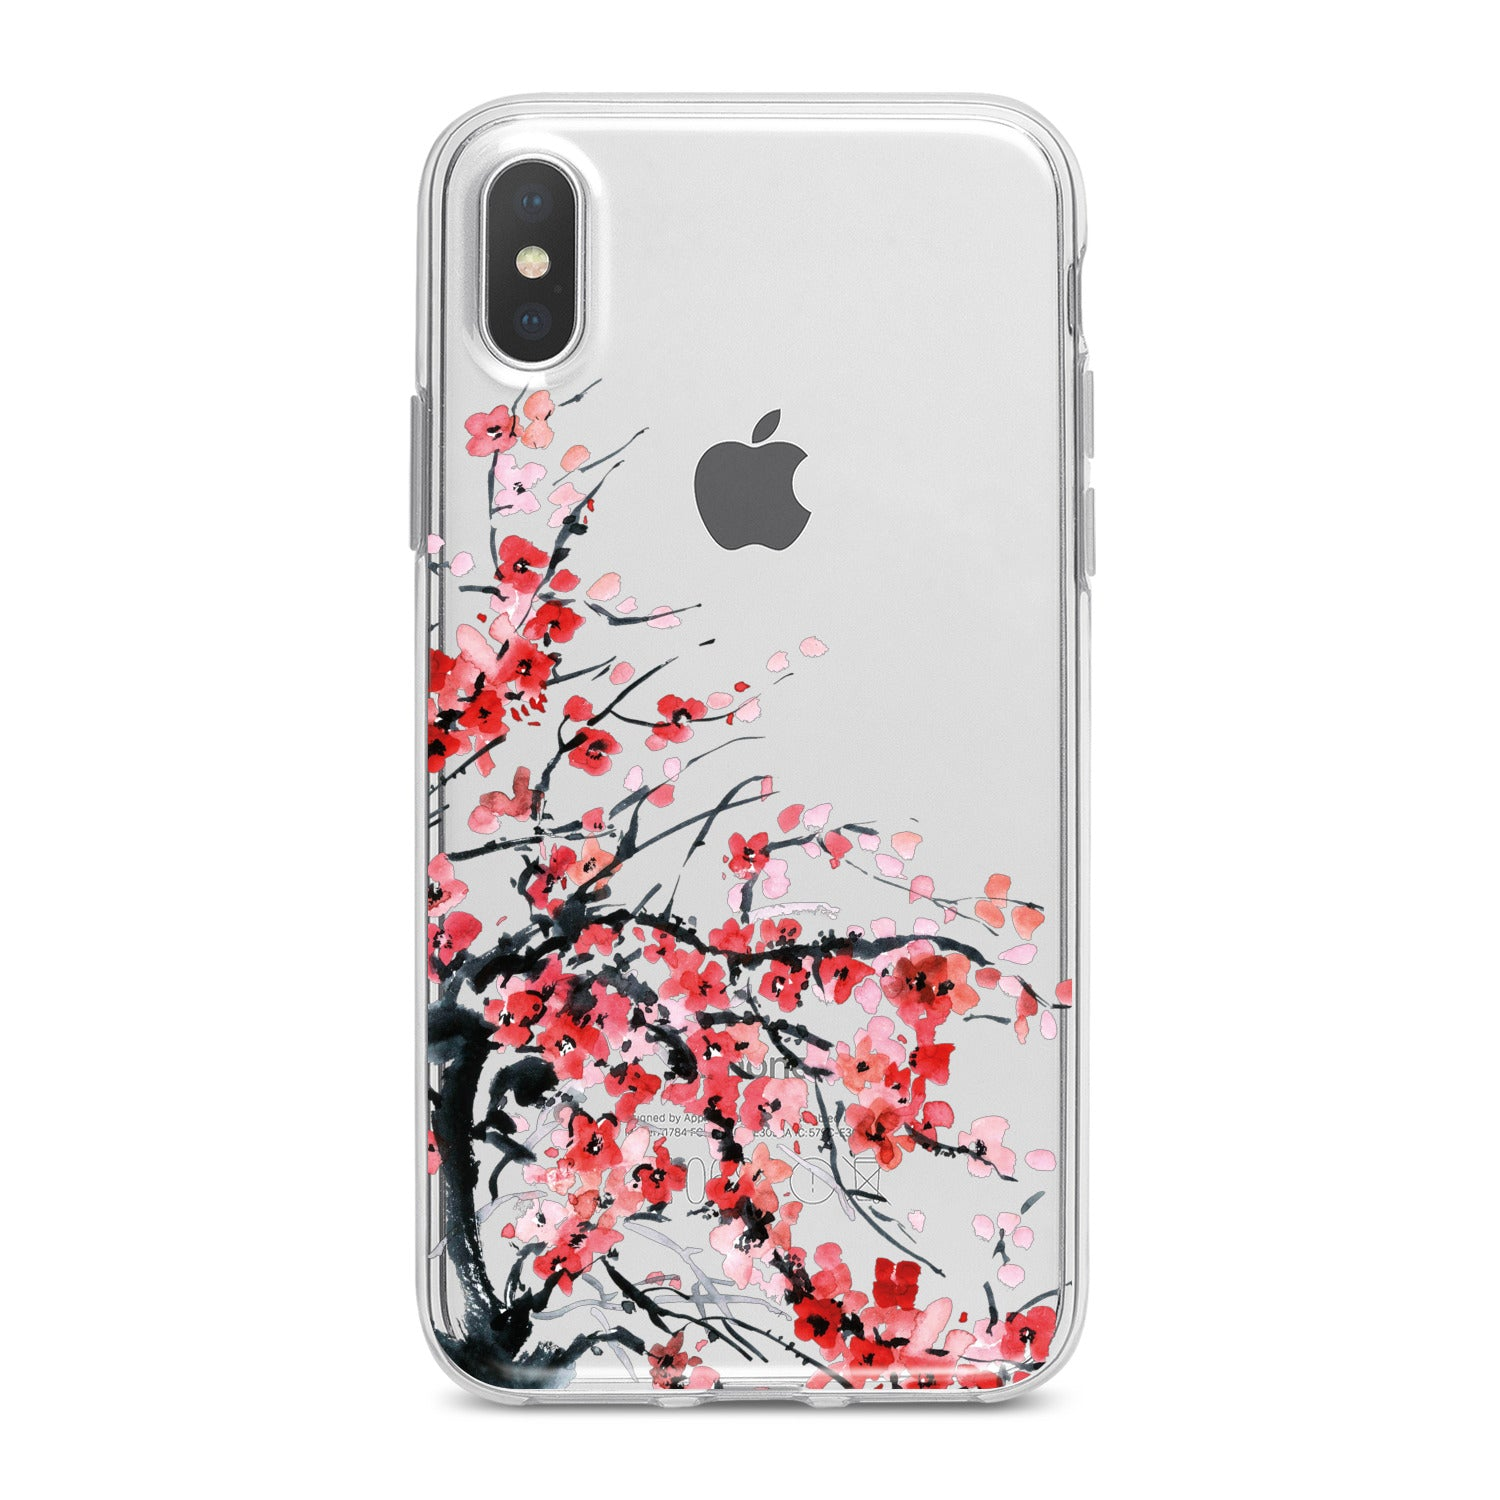 Lex Altern Red Flowers Phone Case for your iPhone & Android phone.